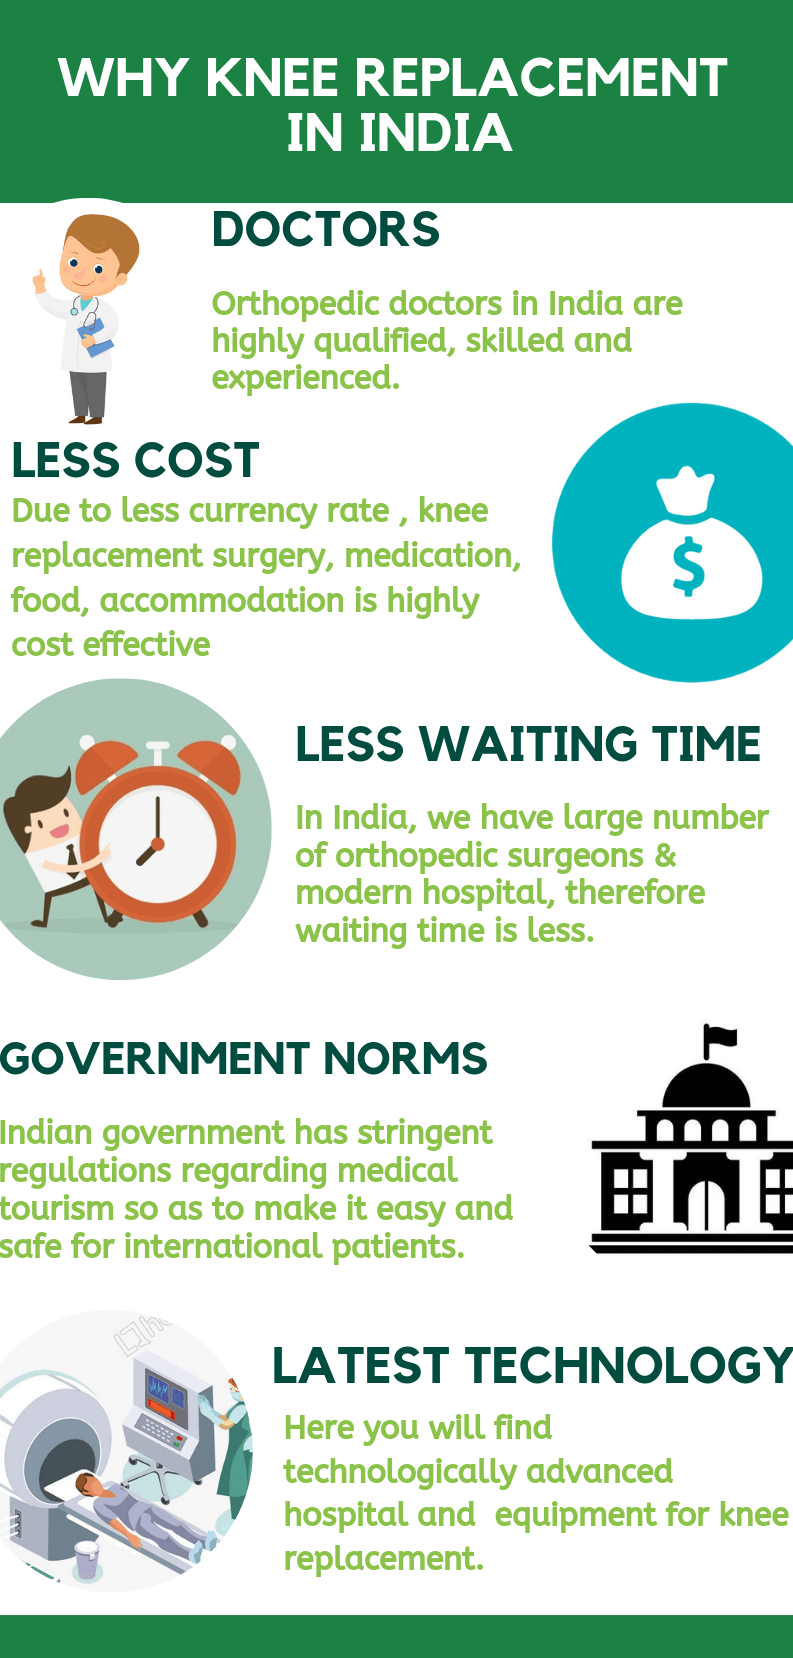 Why Knee Replacement in India